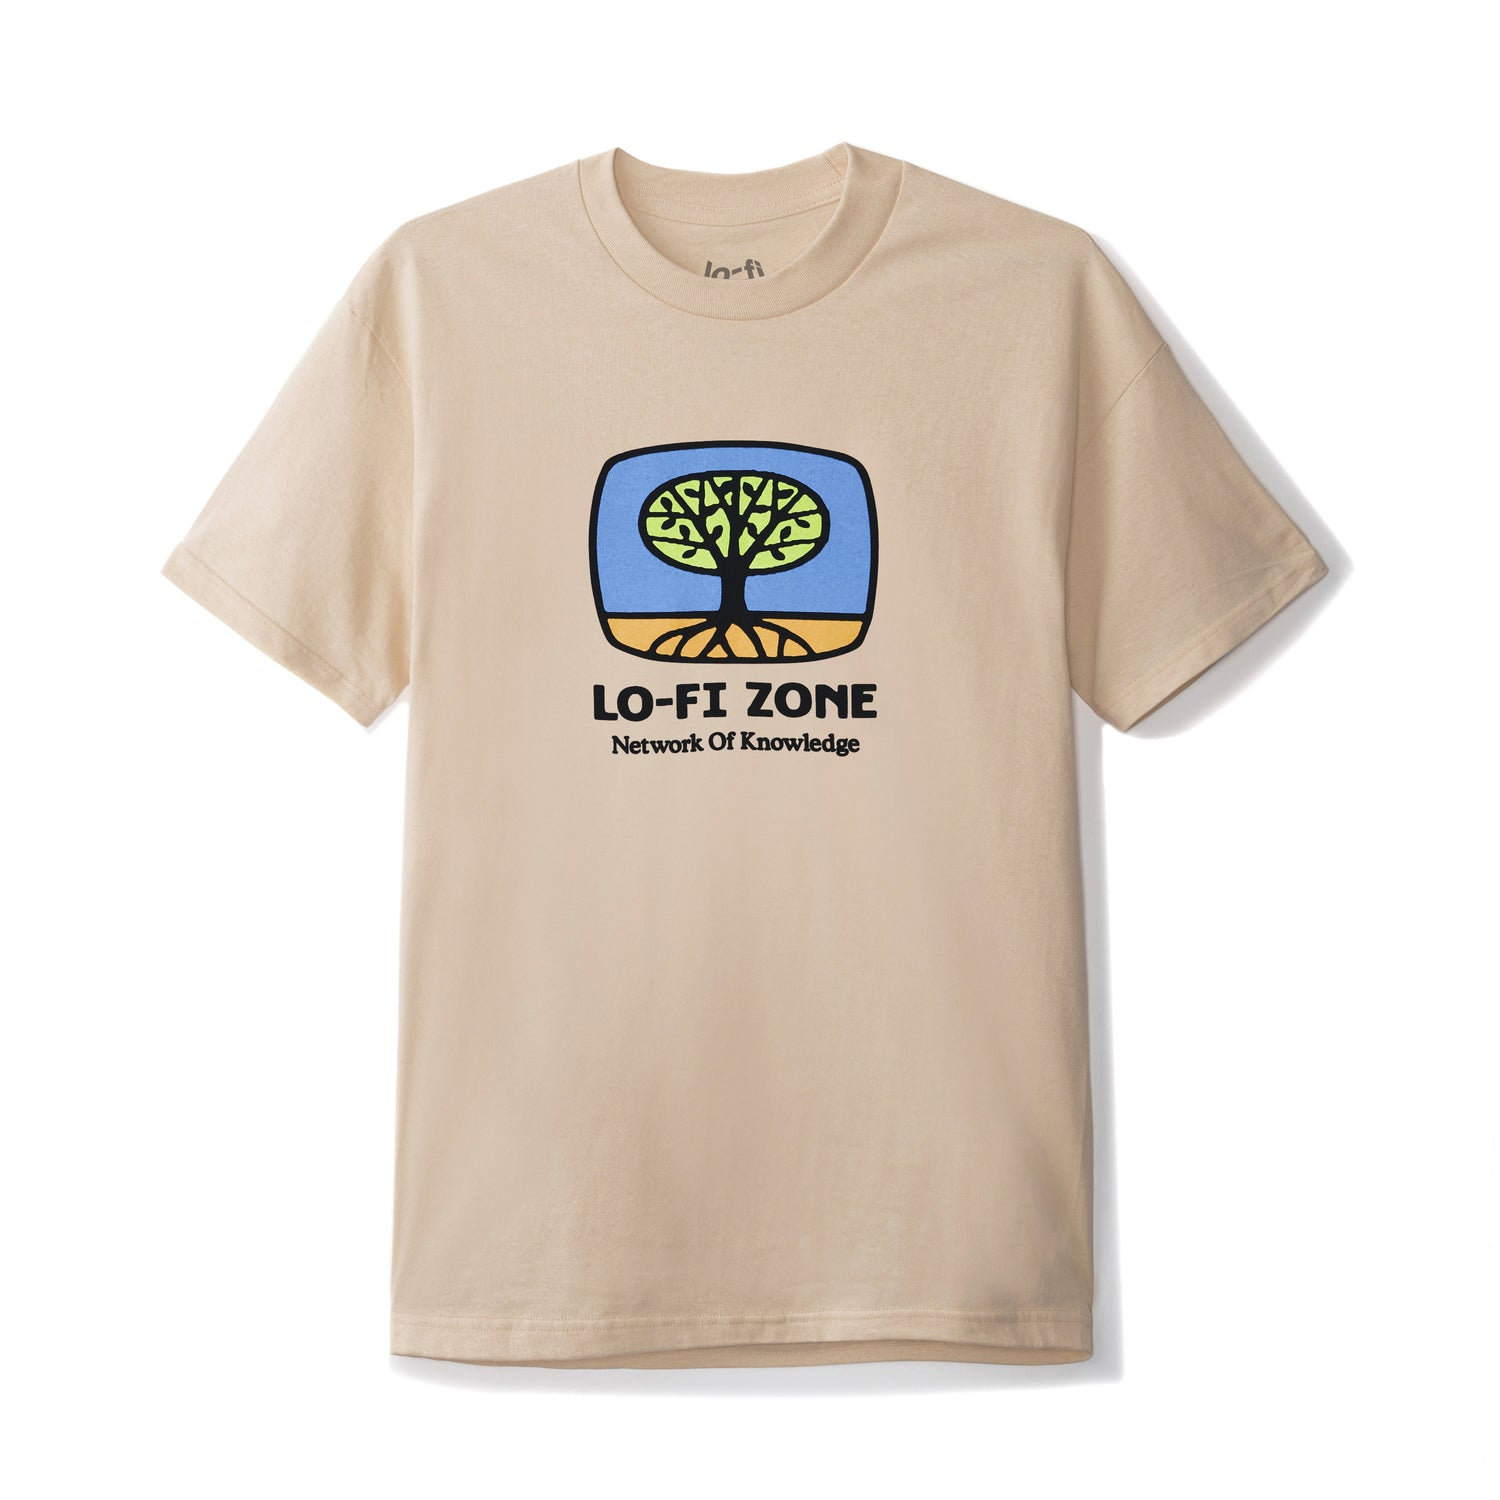 Network of Knowledge Tee, Sand